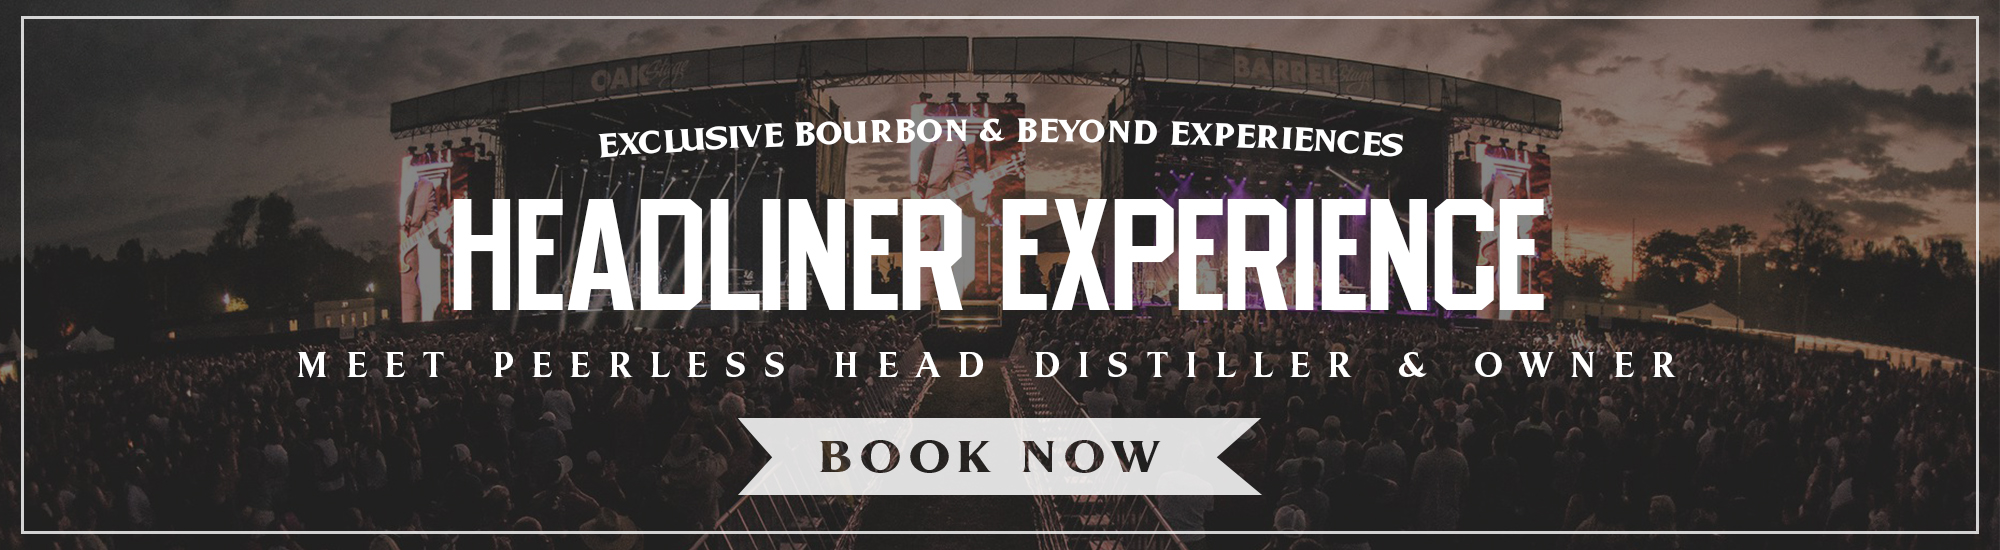 Peerless_Headliner bourbon and beyond 2018